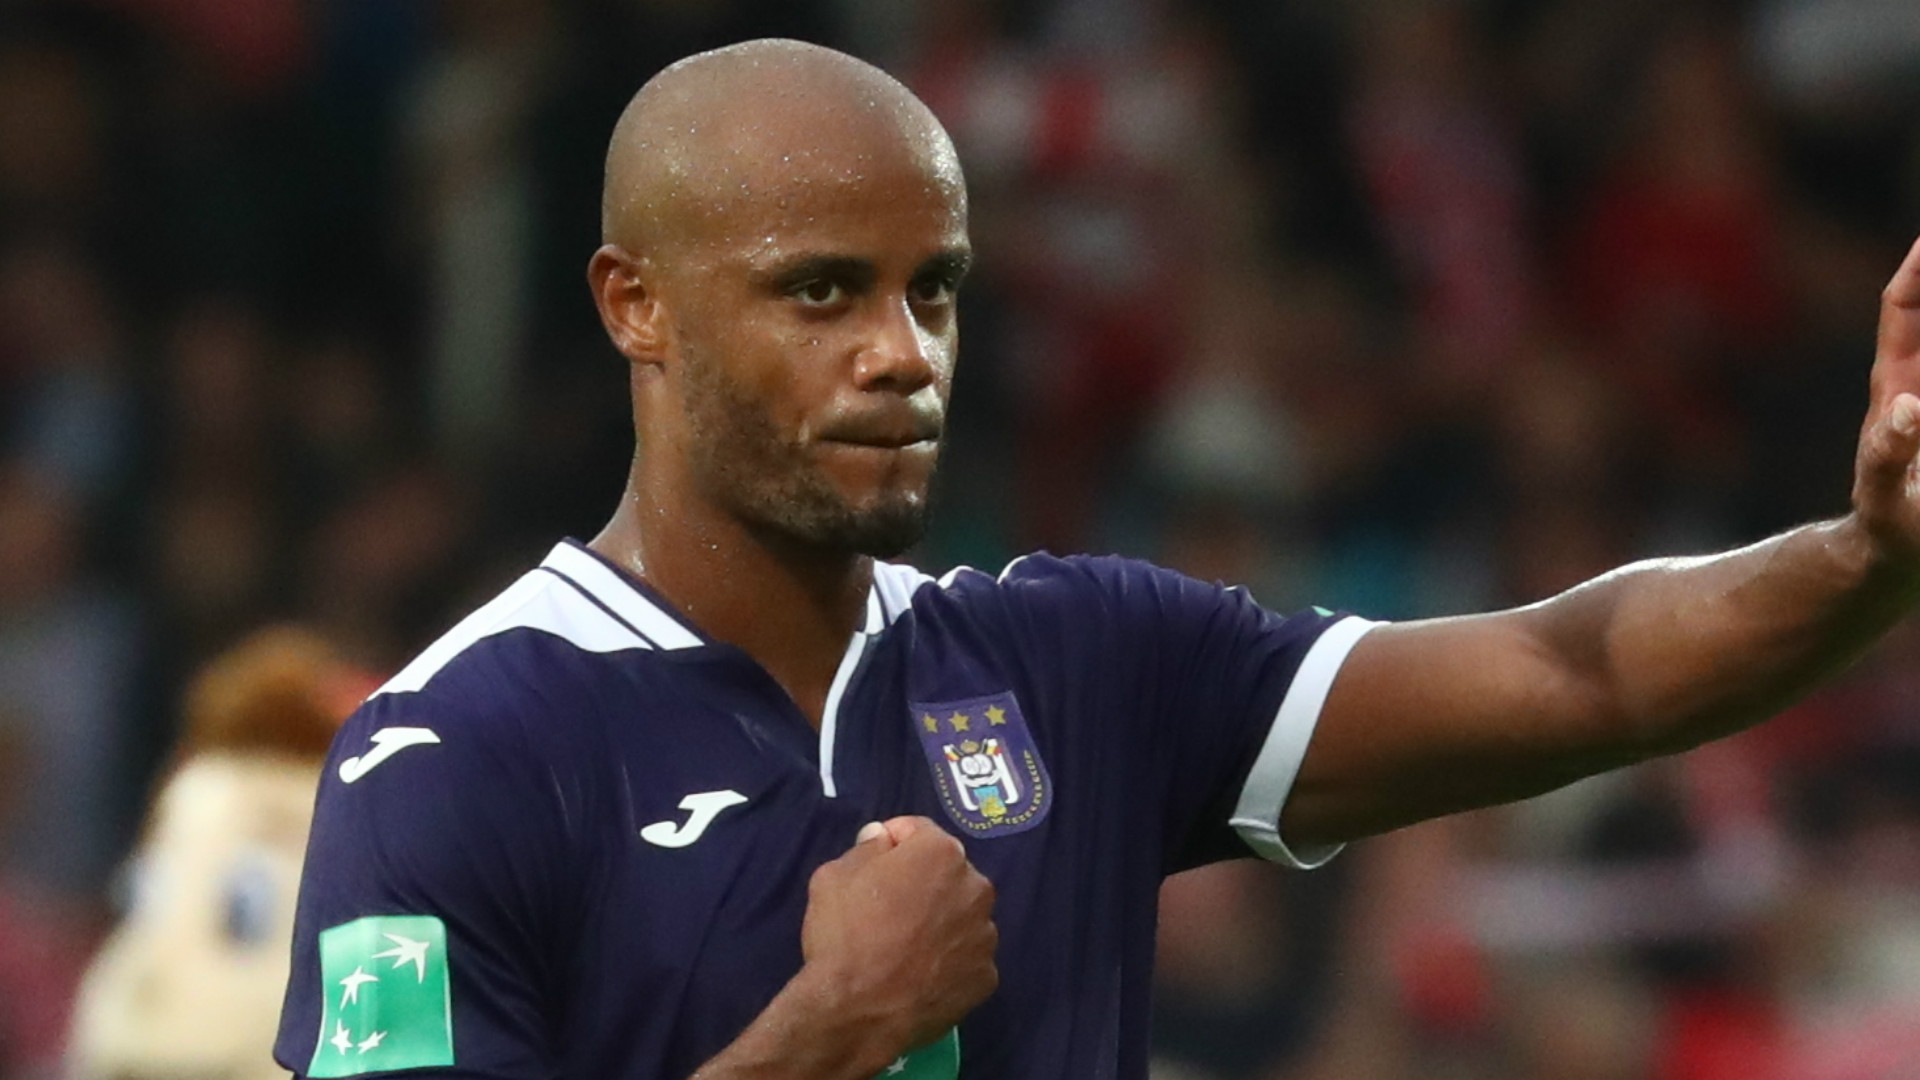 Vincent Kompany: Anderlecht boss gives up managerial duties on match days